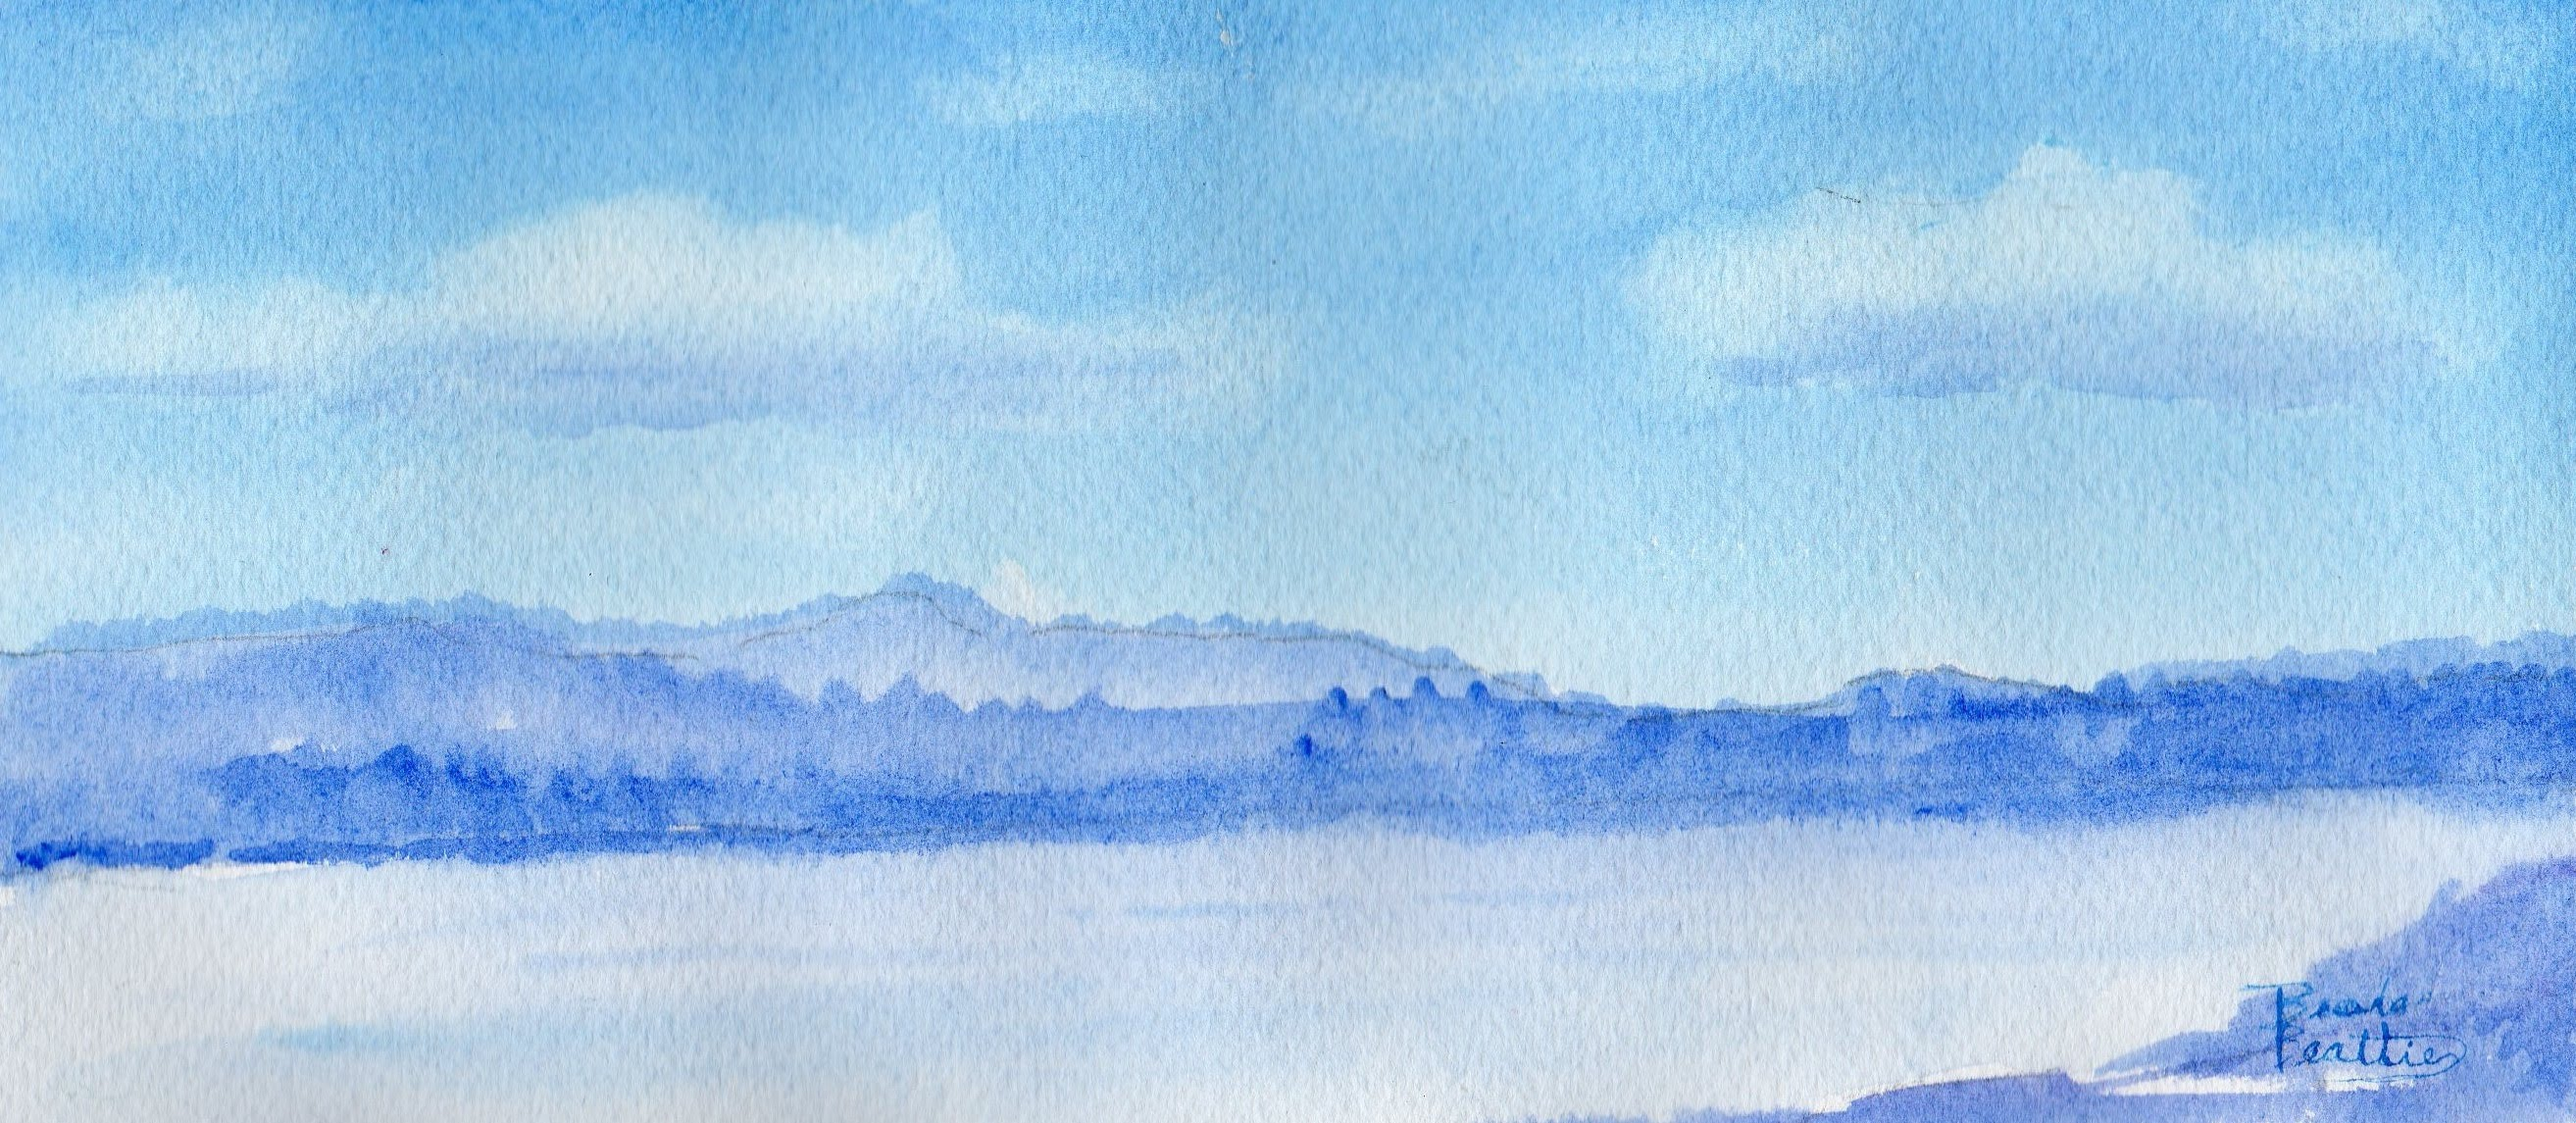 Painting Clouds In Watercolor